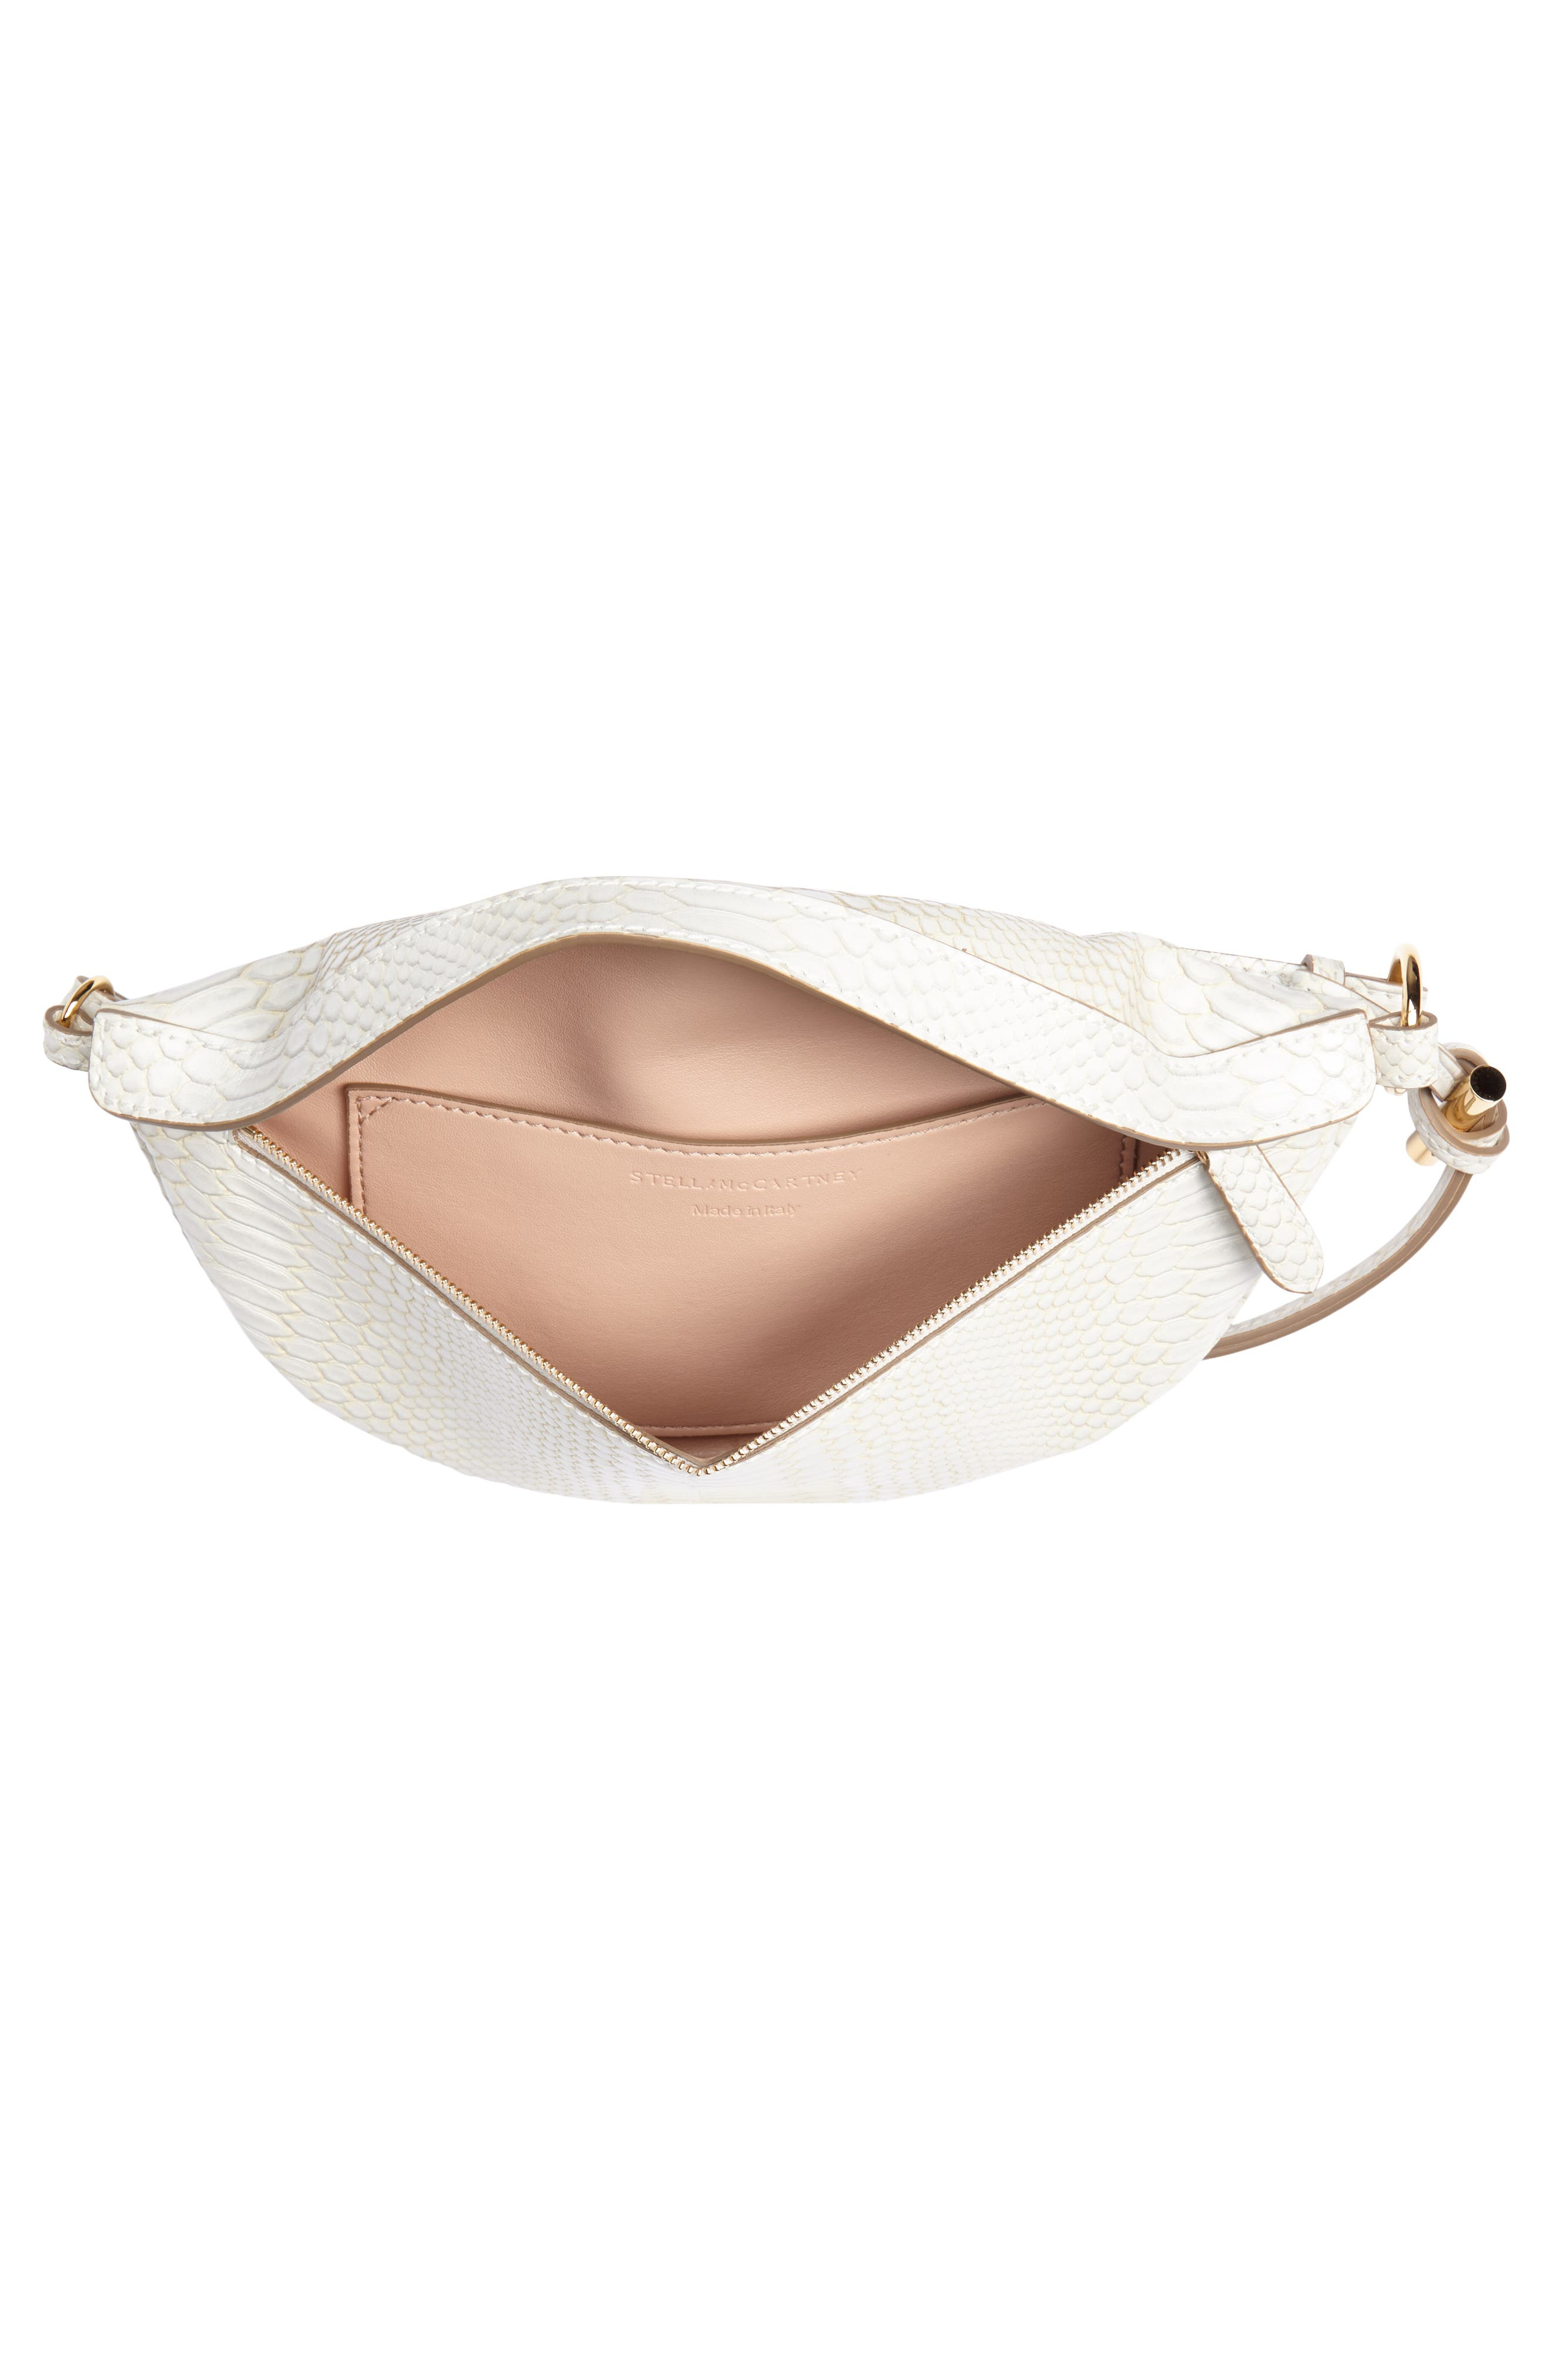 Alter Snake Faux Leather Fanny Pack,                             Alternate thumbnail 5, color,                             IVORY